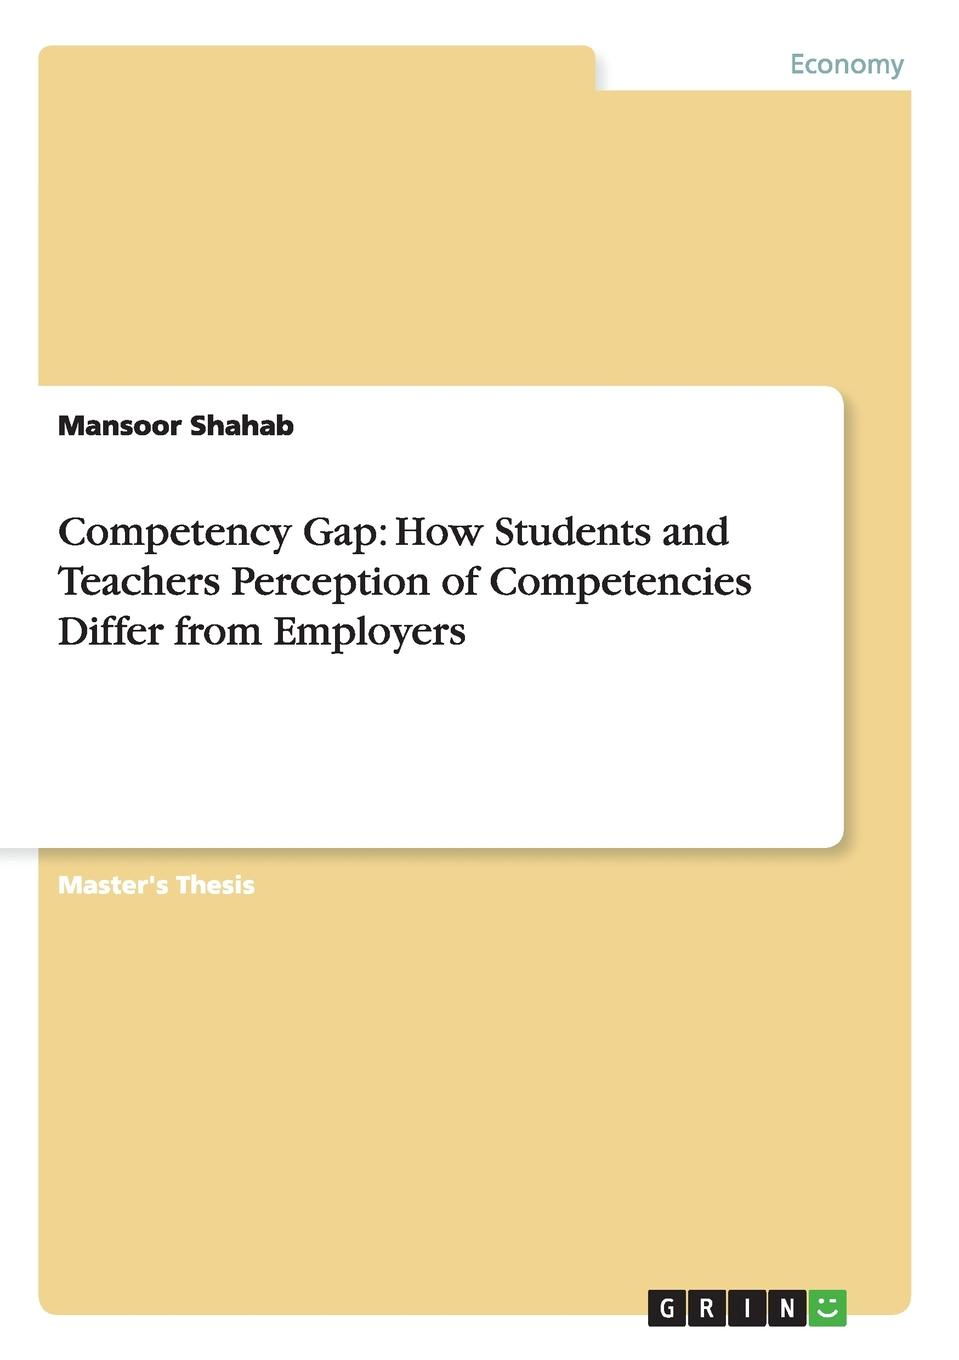 Mansoor Shahab Competency Gap. How Students and Teachers Perception of Competencies Differ from Employers amjad reba perception about ngo contribution towards education